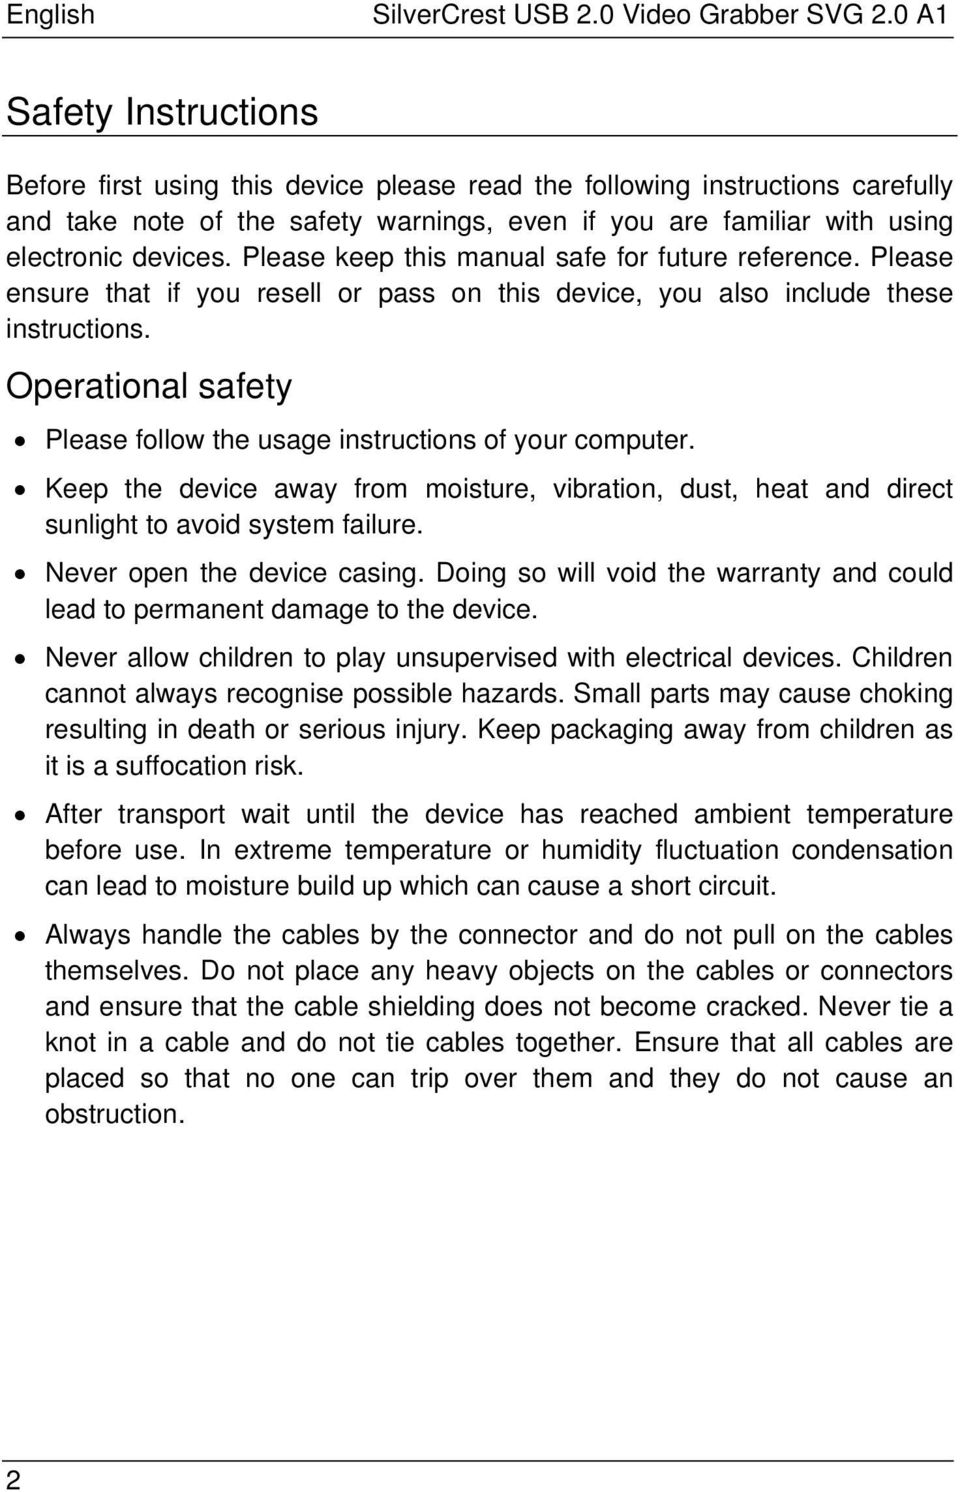 Please keep this manual safe for future reference. Please ensure that if you resell or pass on this device, you also include these instructions.